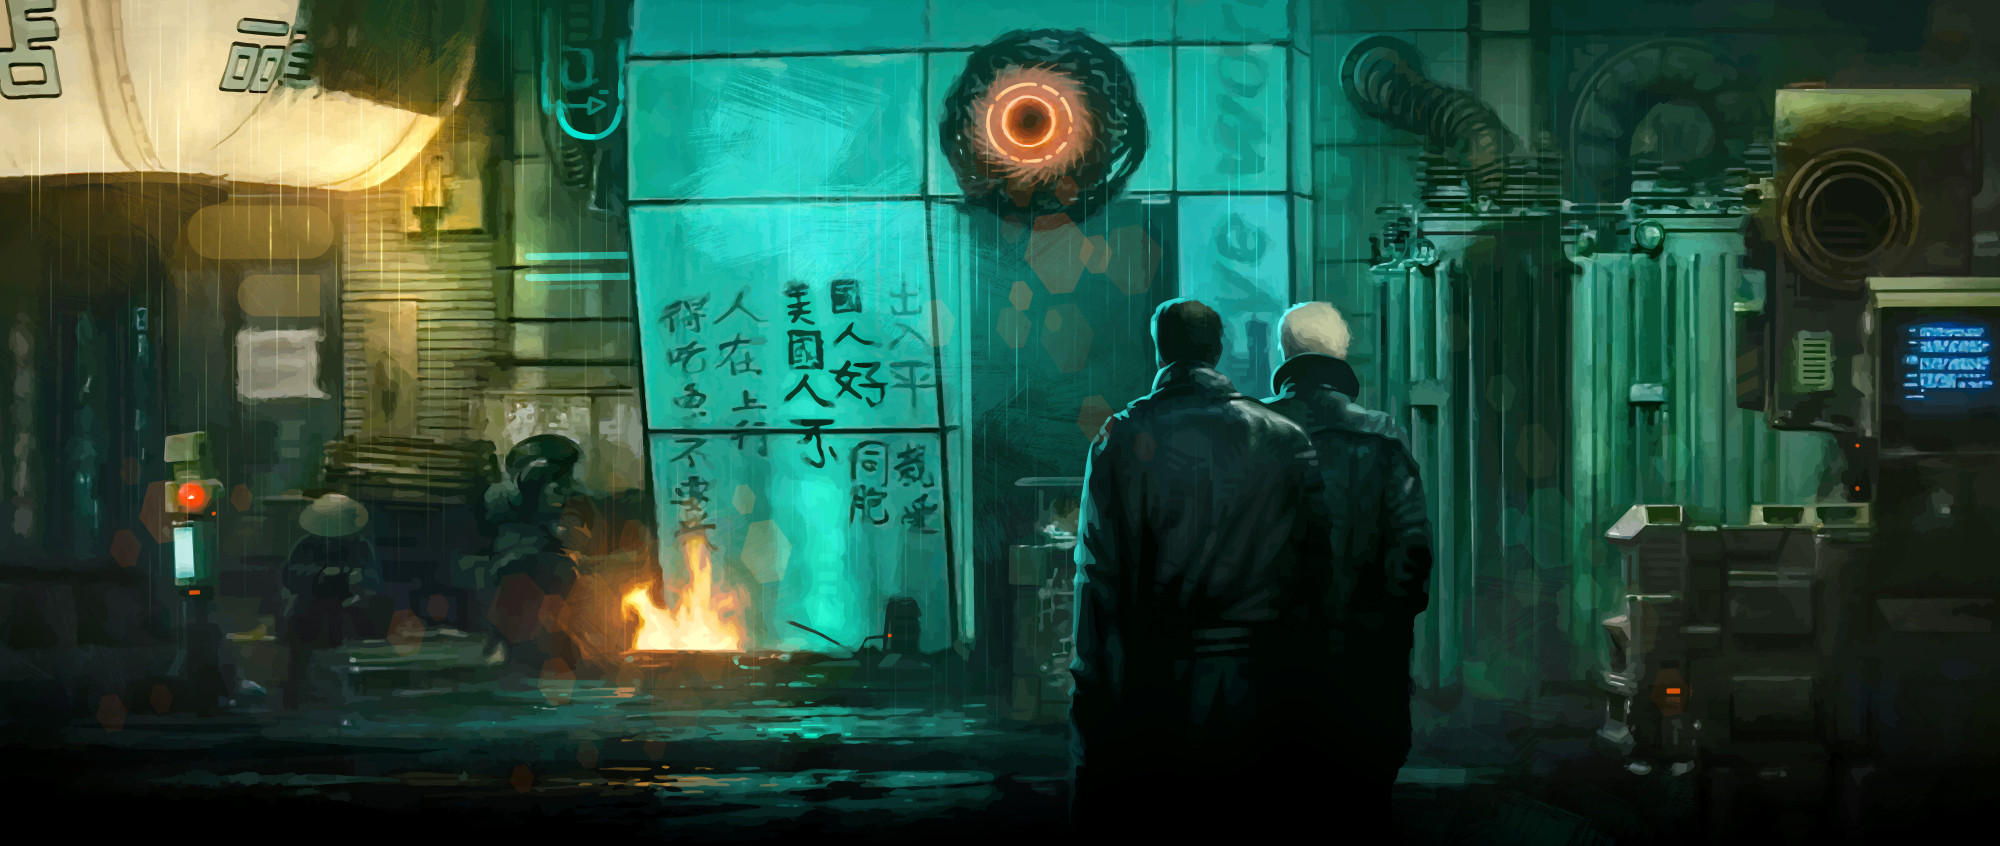 Roy and Leon visit Chew (Blade Runner)